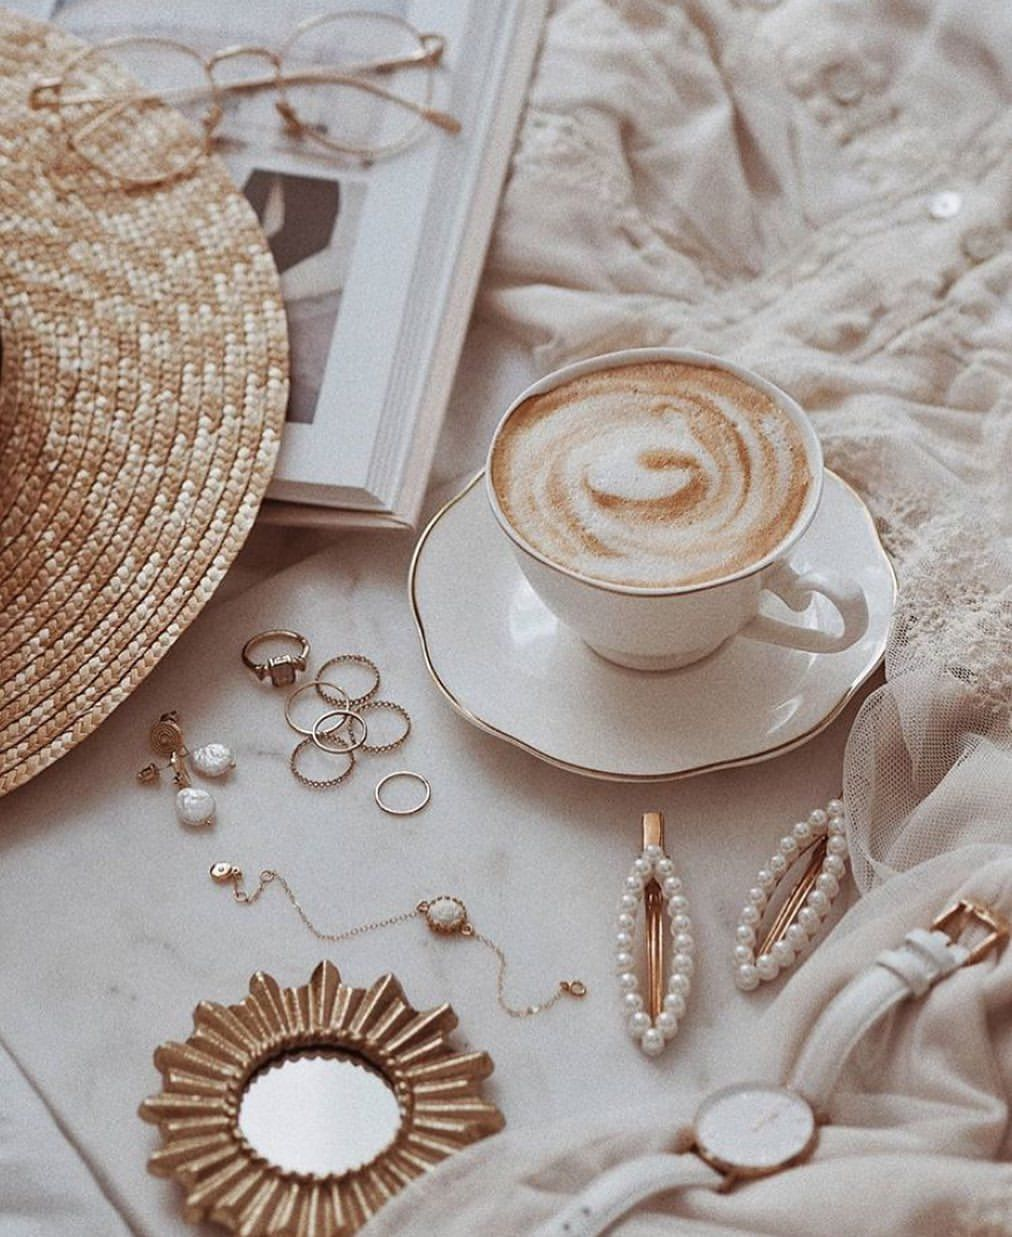 What S Your Go To Coffee Order Annalovesneutrals Coffee Latte Neutrals Jewelry Dreamy Flatlay Flatlays Coffeeart Https Coffee Art Flatlay Coffee